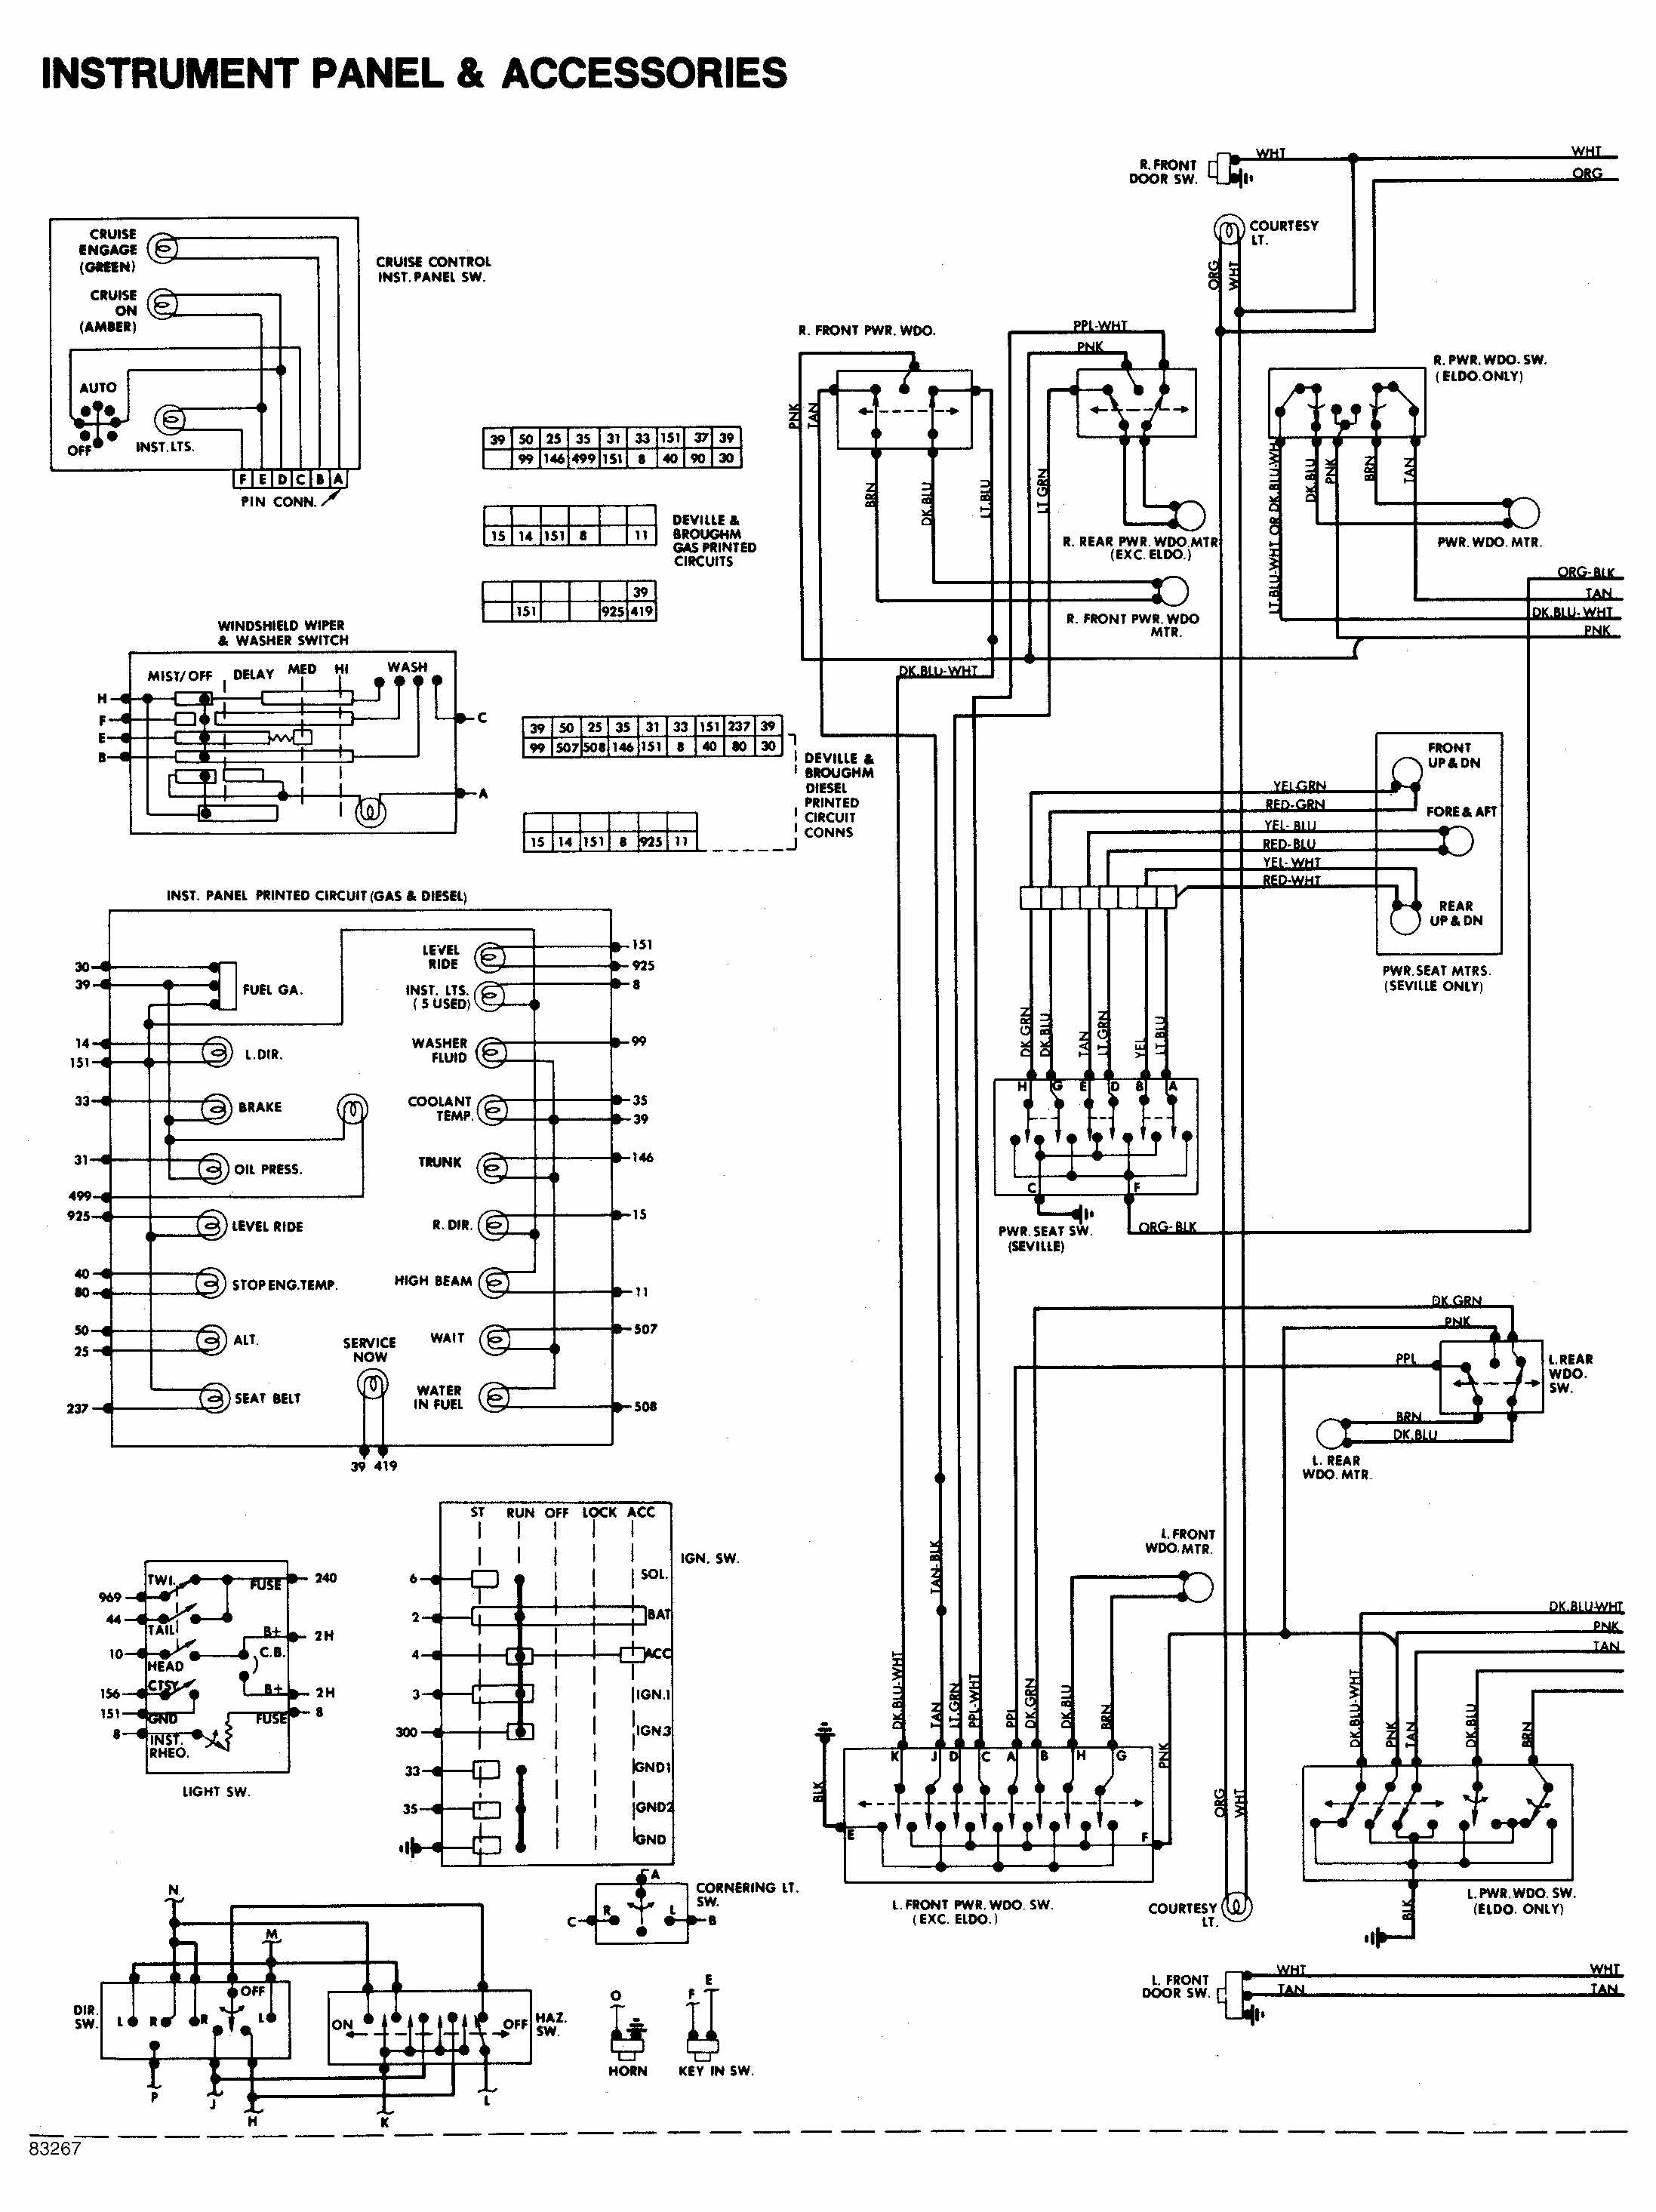 Wiring Diagram For Sportster With A Magneto And A